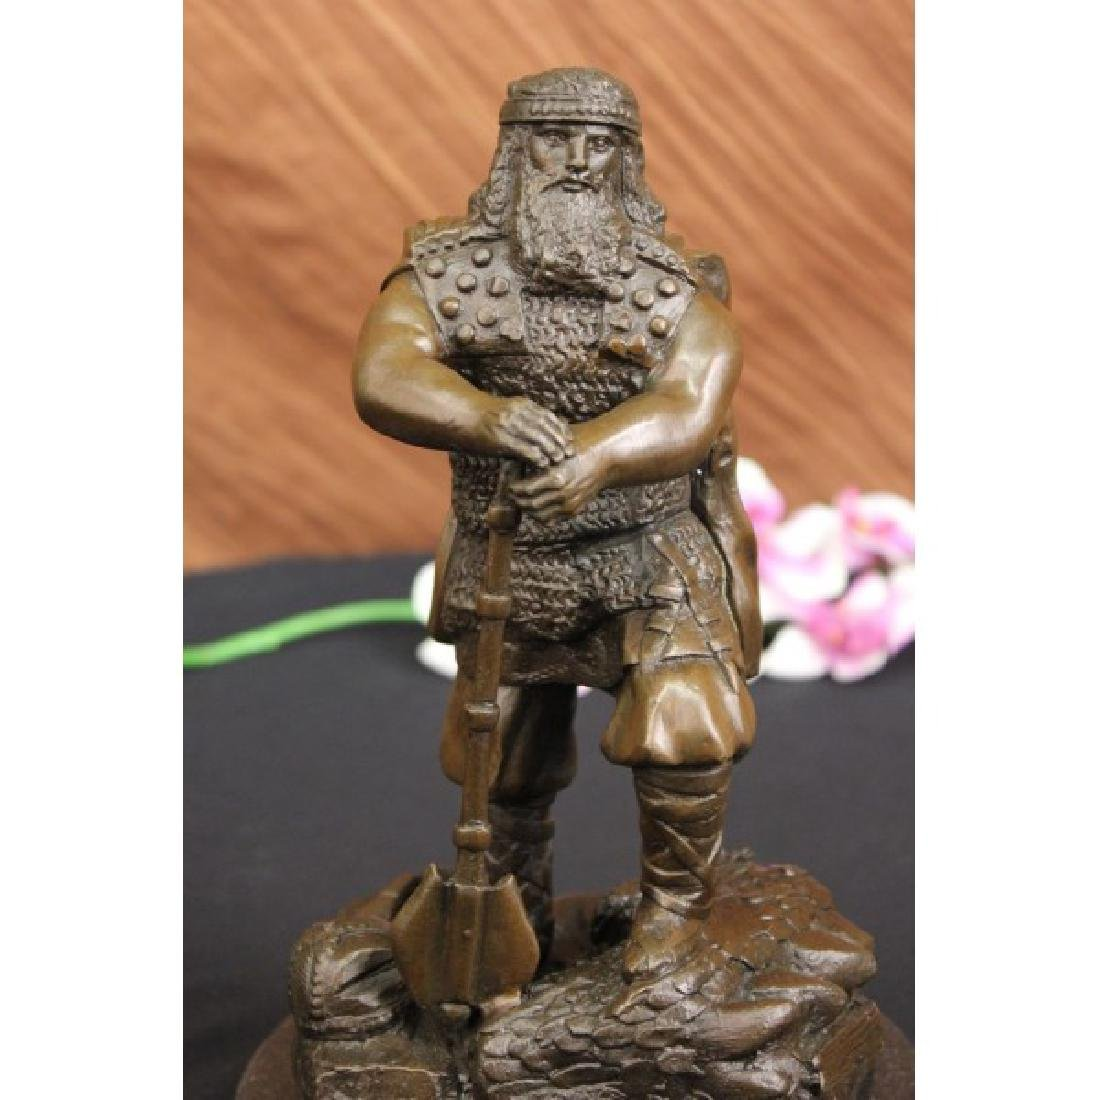 Heavy Armor Powerful Huscarl Viking Bronze Sculpture by